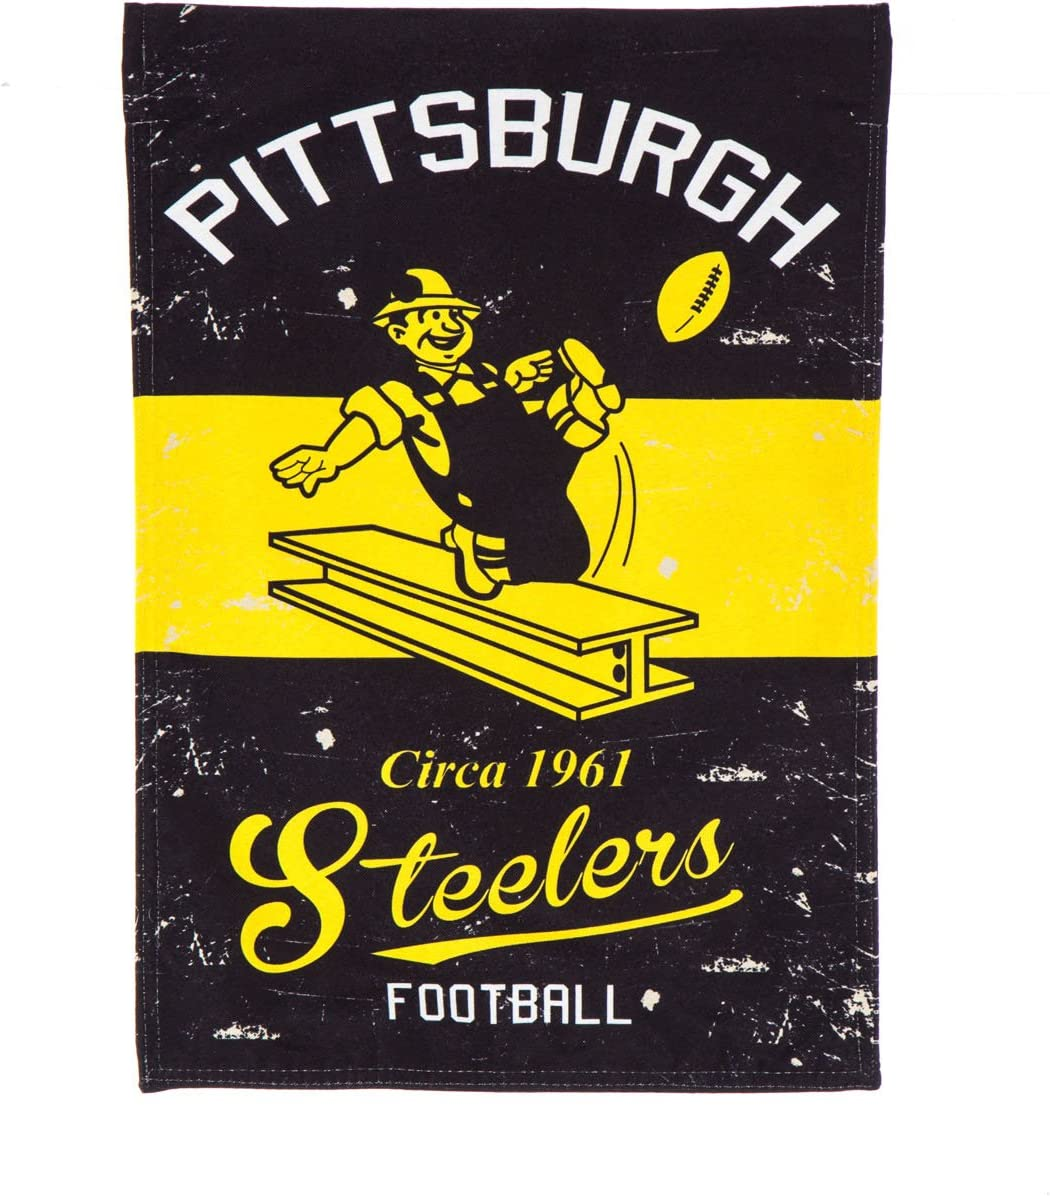 "Team Sports America Pittsburgh Steelers NFL Vintage Linen Garden Flag - 12.5"" W x 18"" H Outdoor Double Sided Décor Sign for Football Fans"